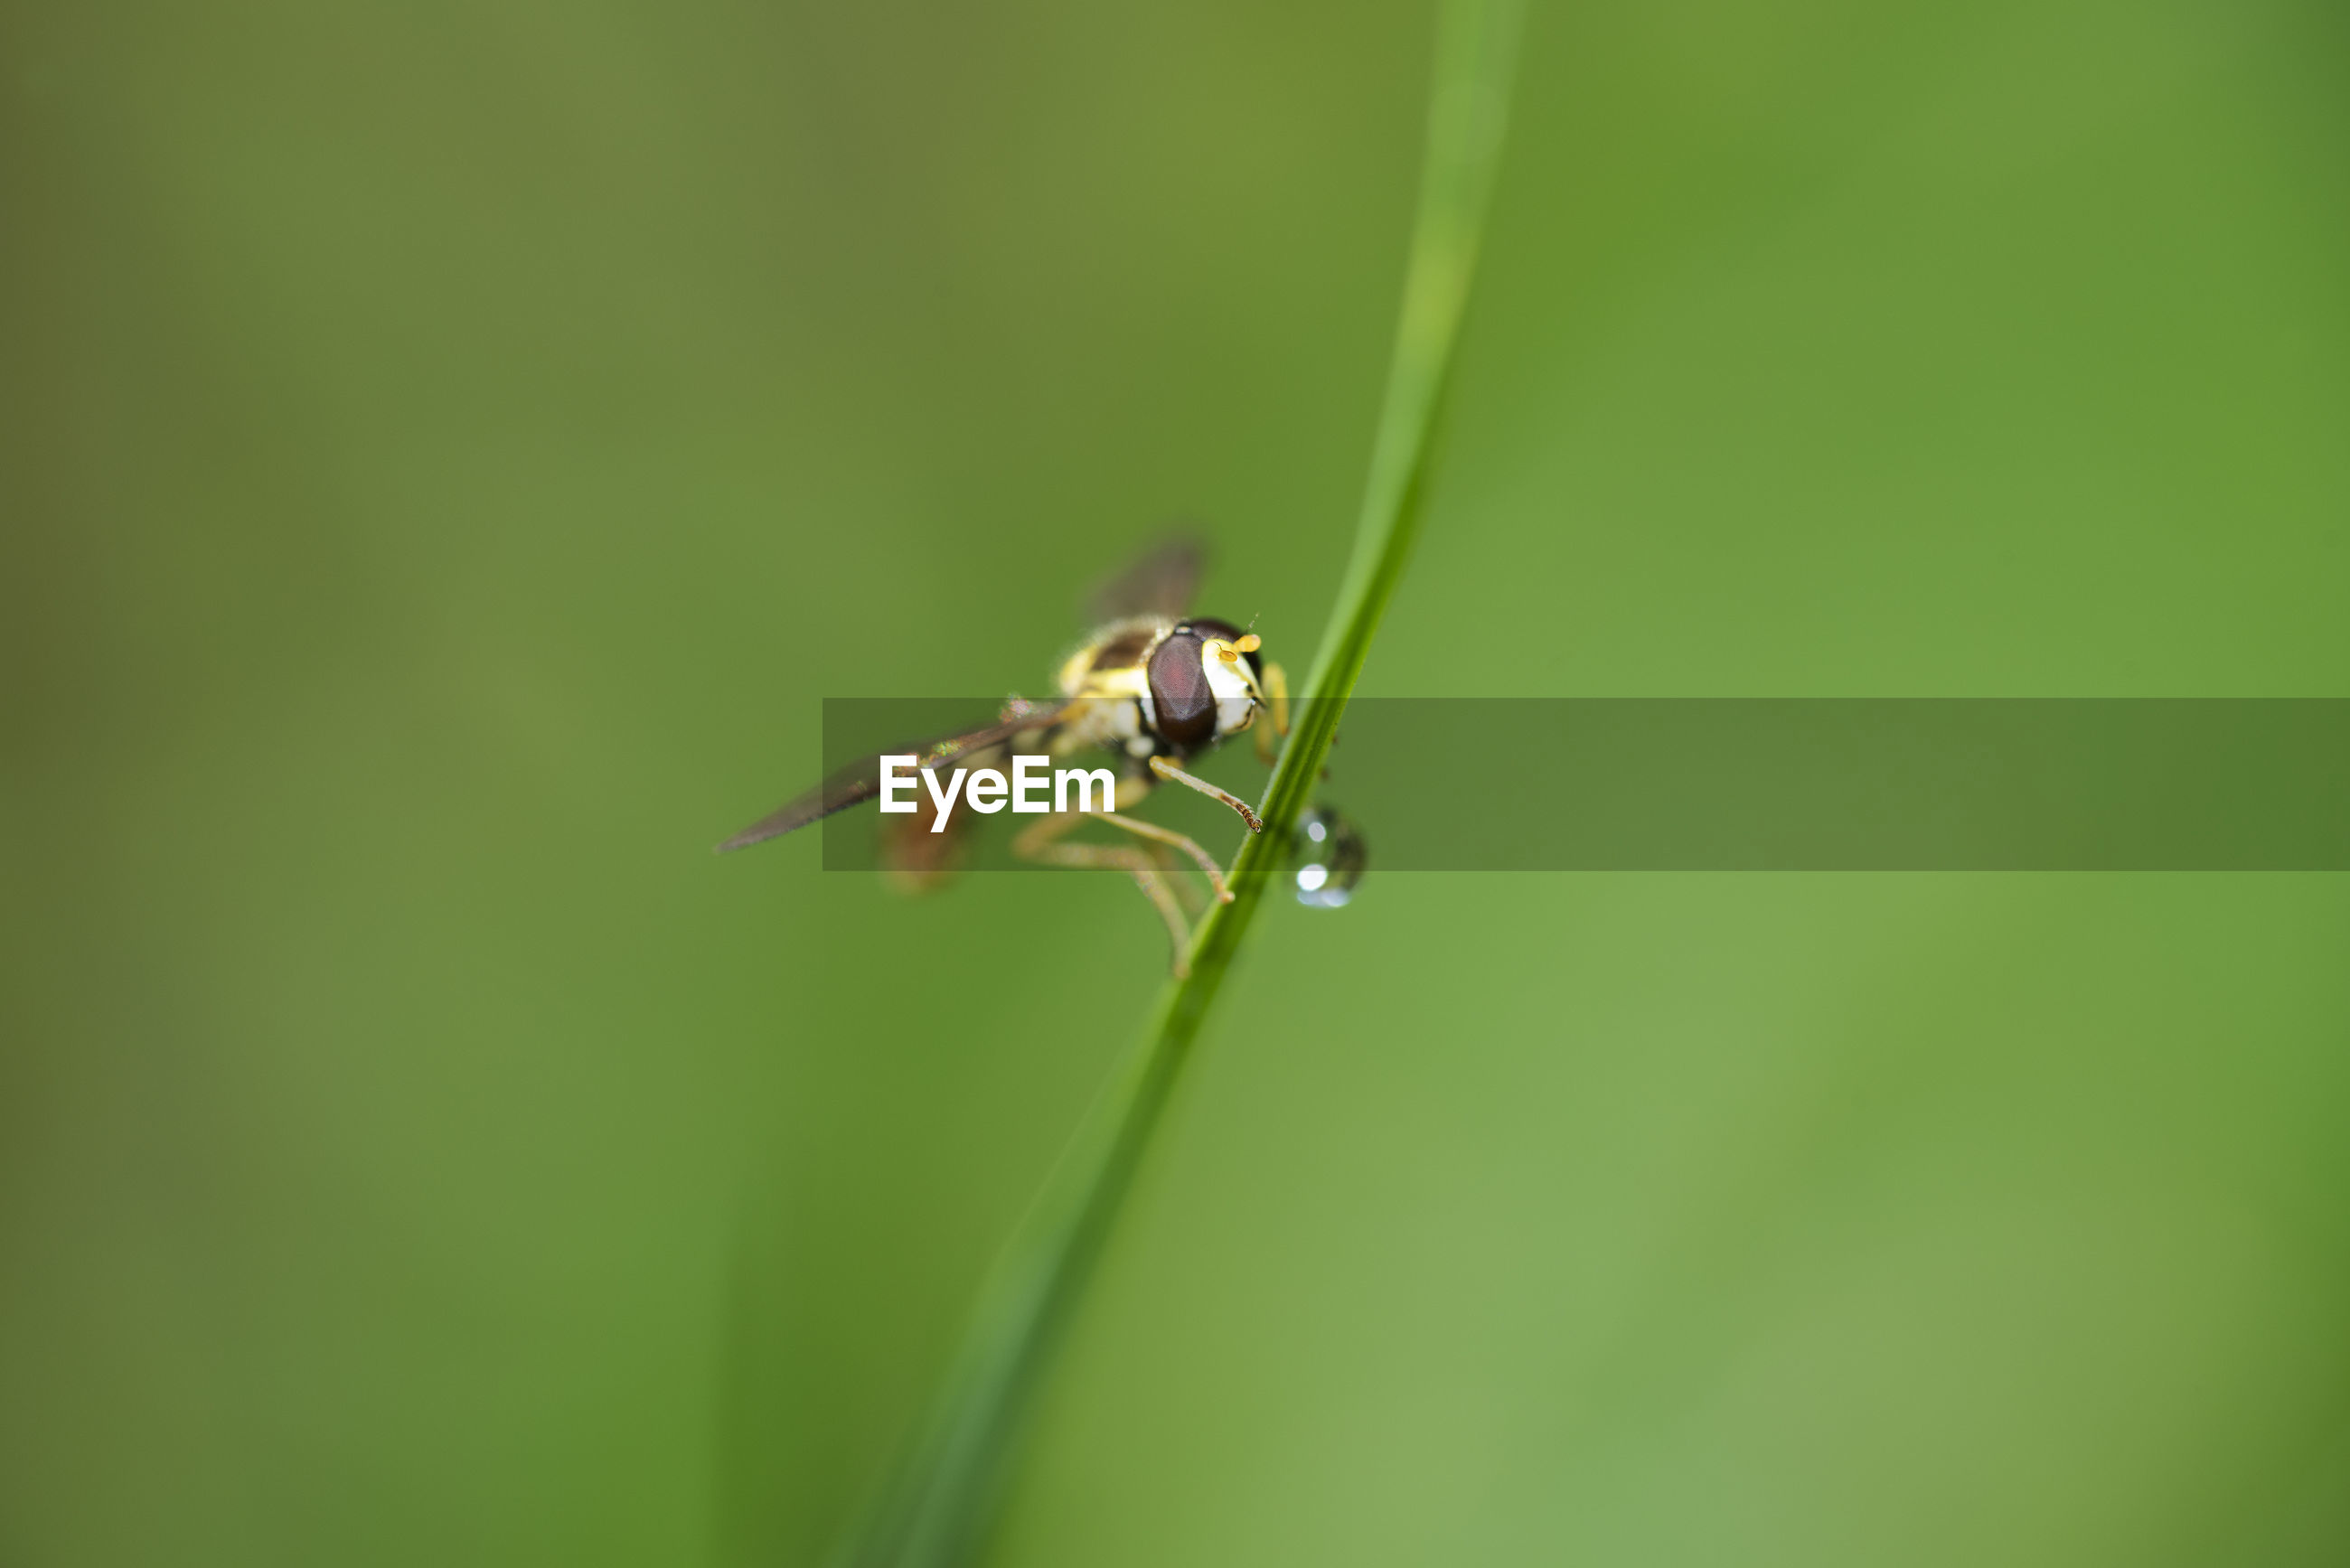 Close-up of insect on leaf, the wasp